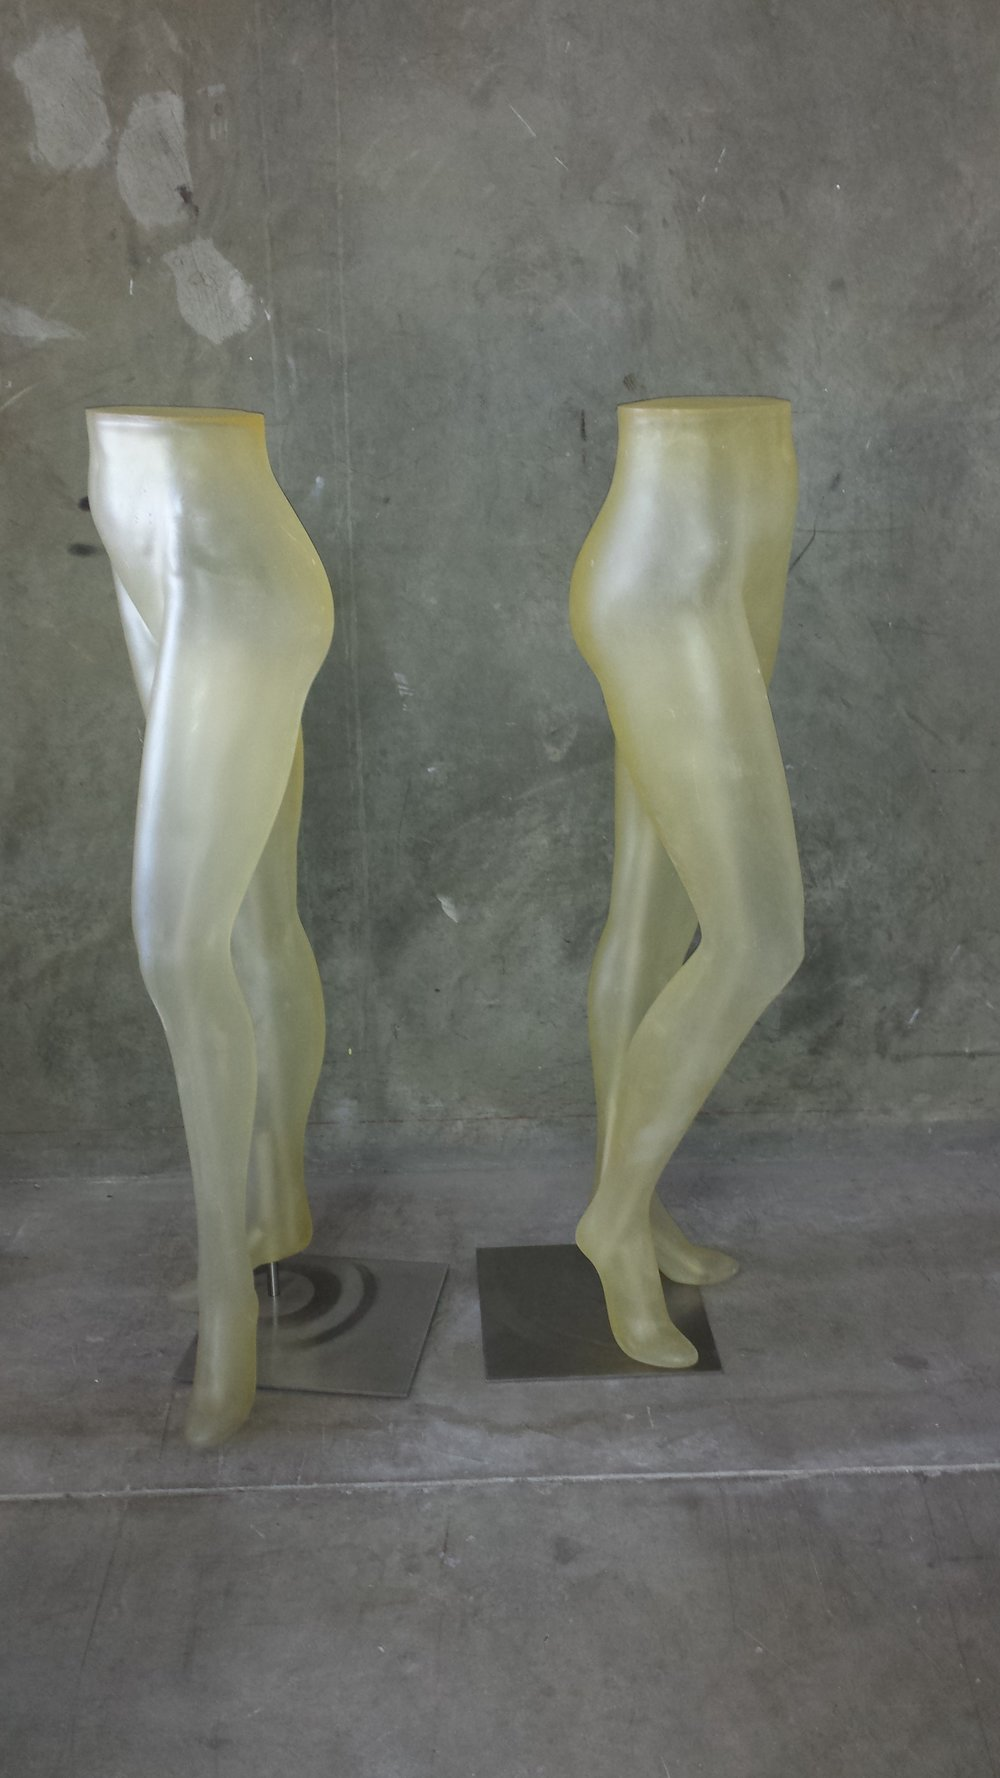 Translucent Pants Forms